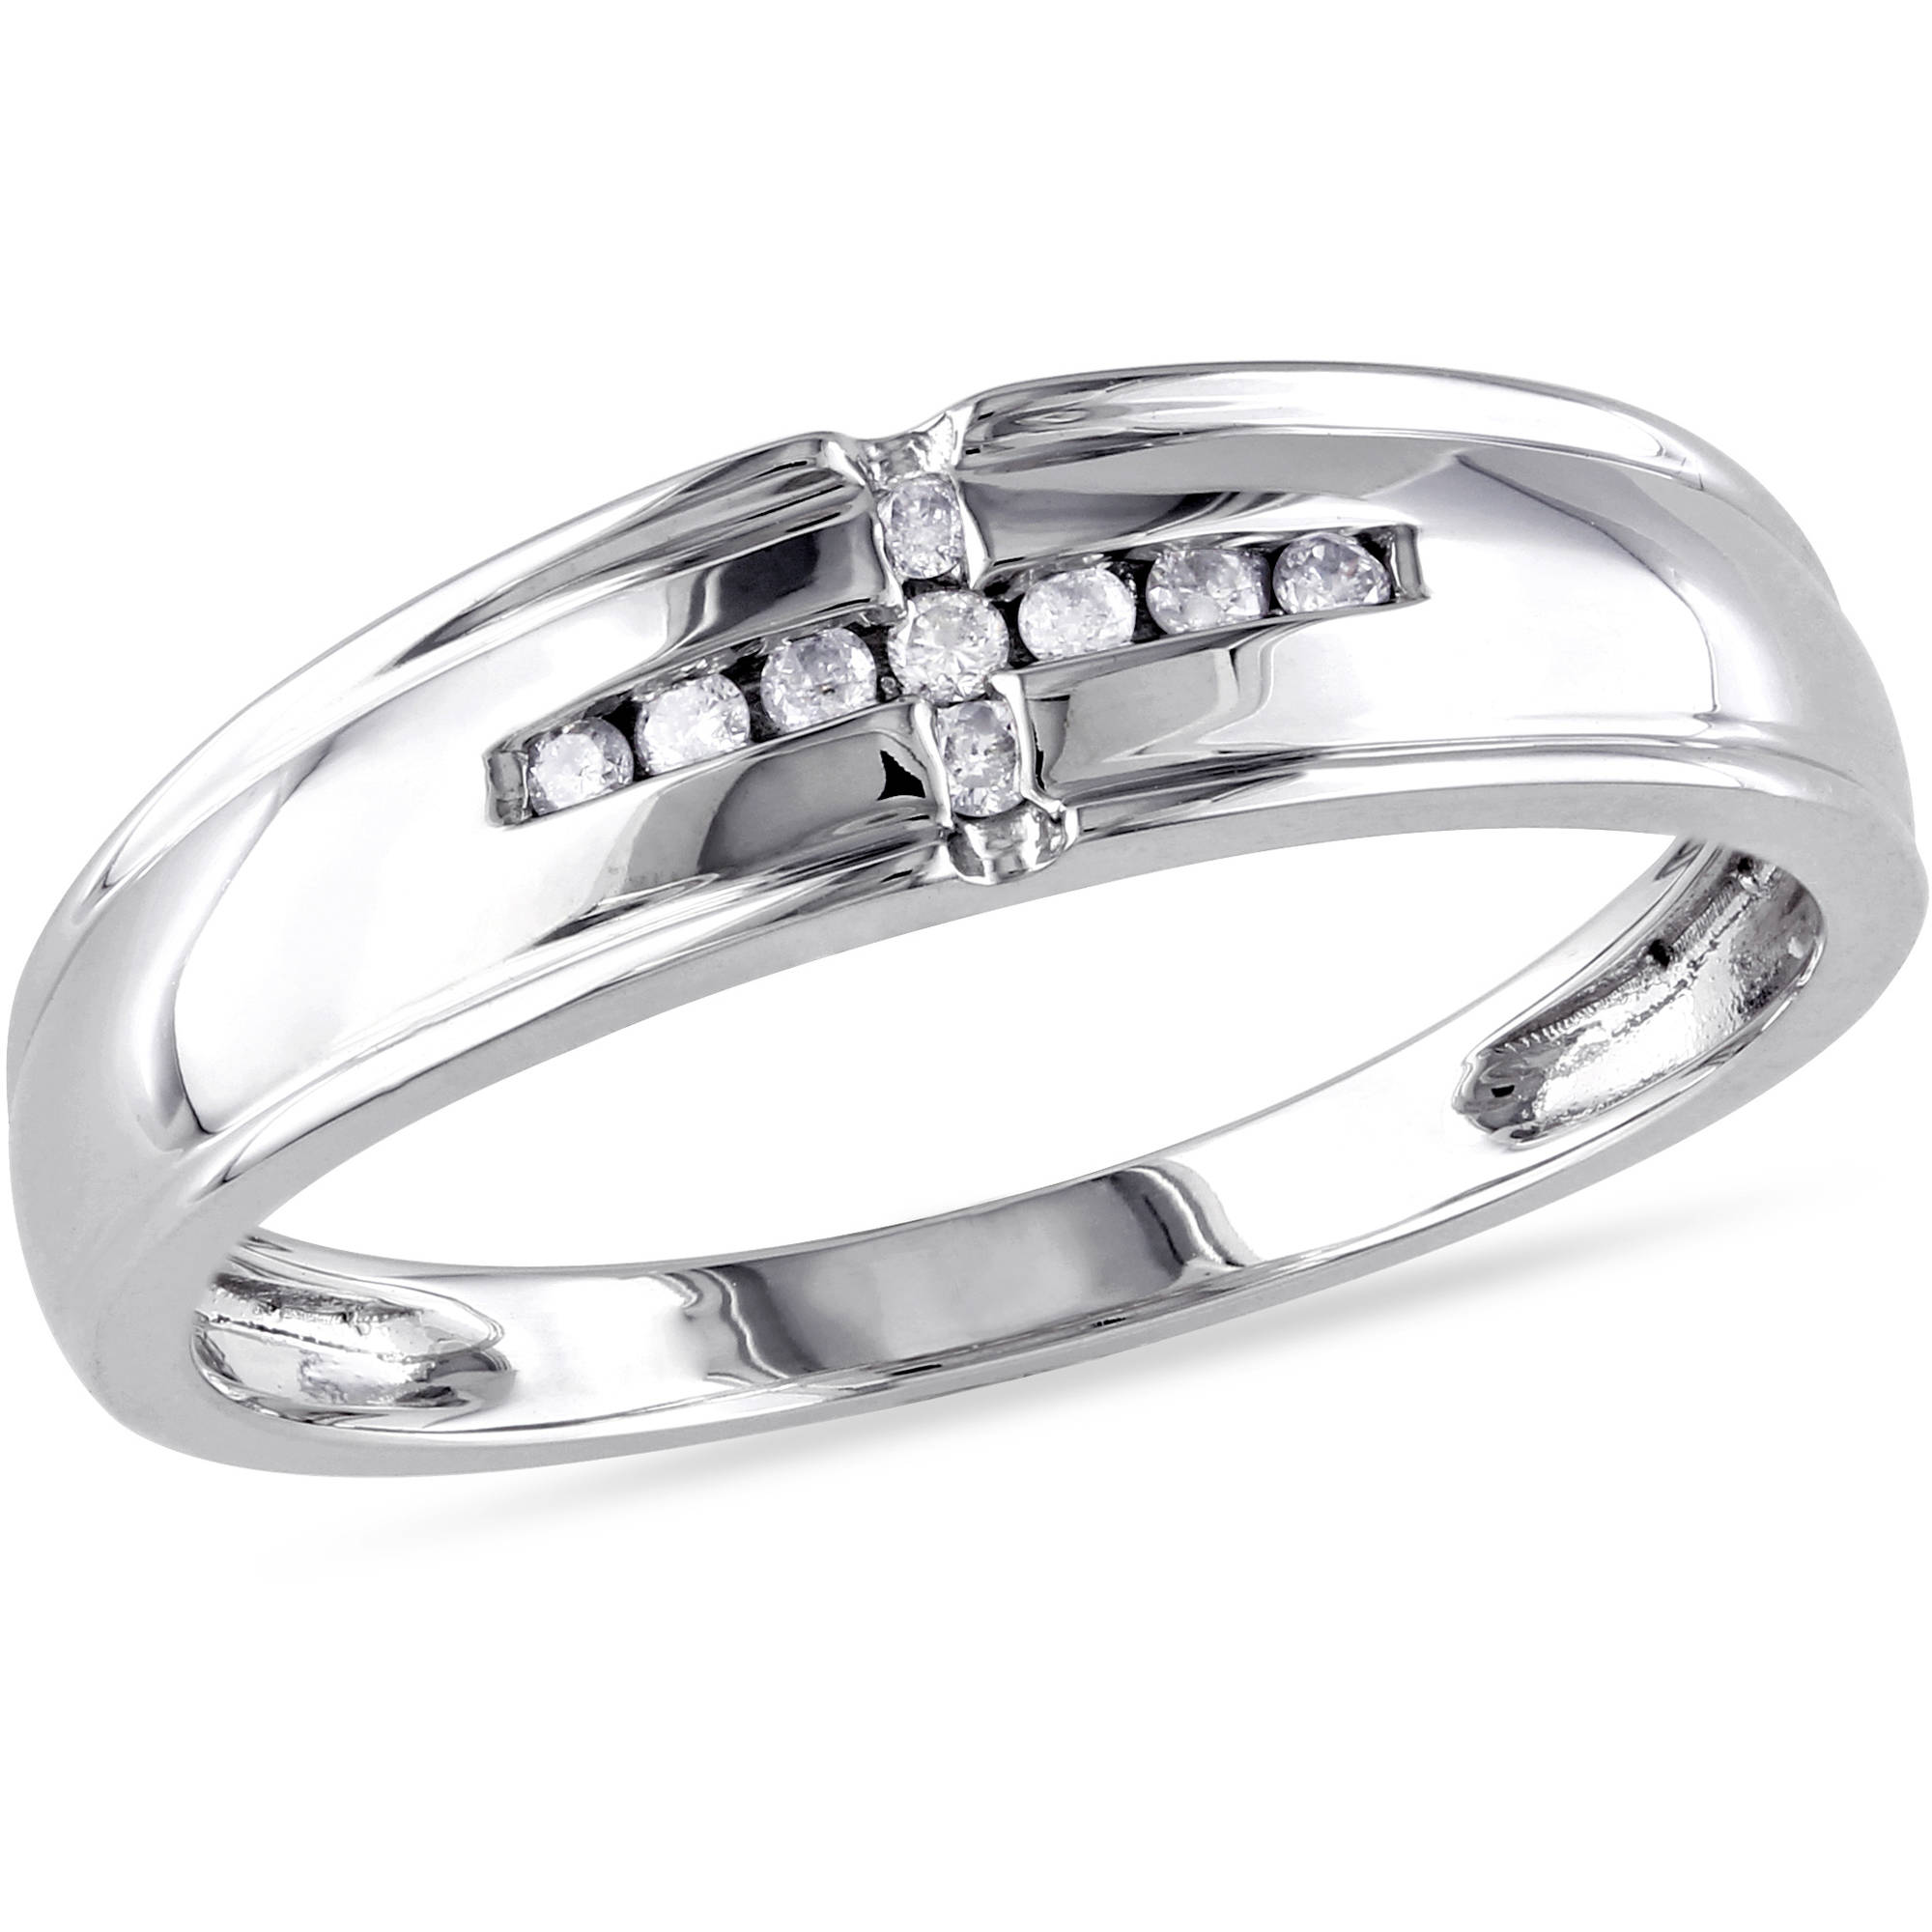 Diamond-Accent Wedding Band in 10kt White Gold